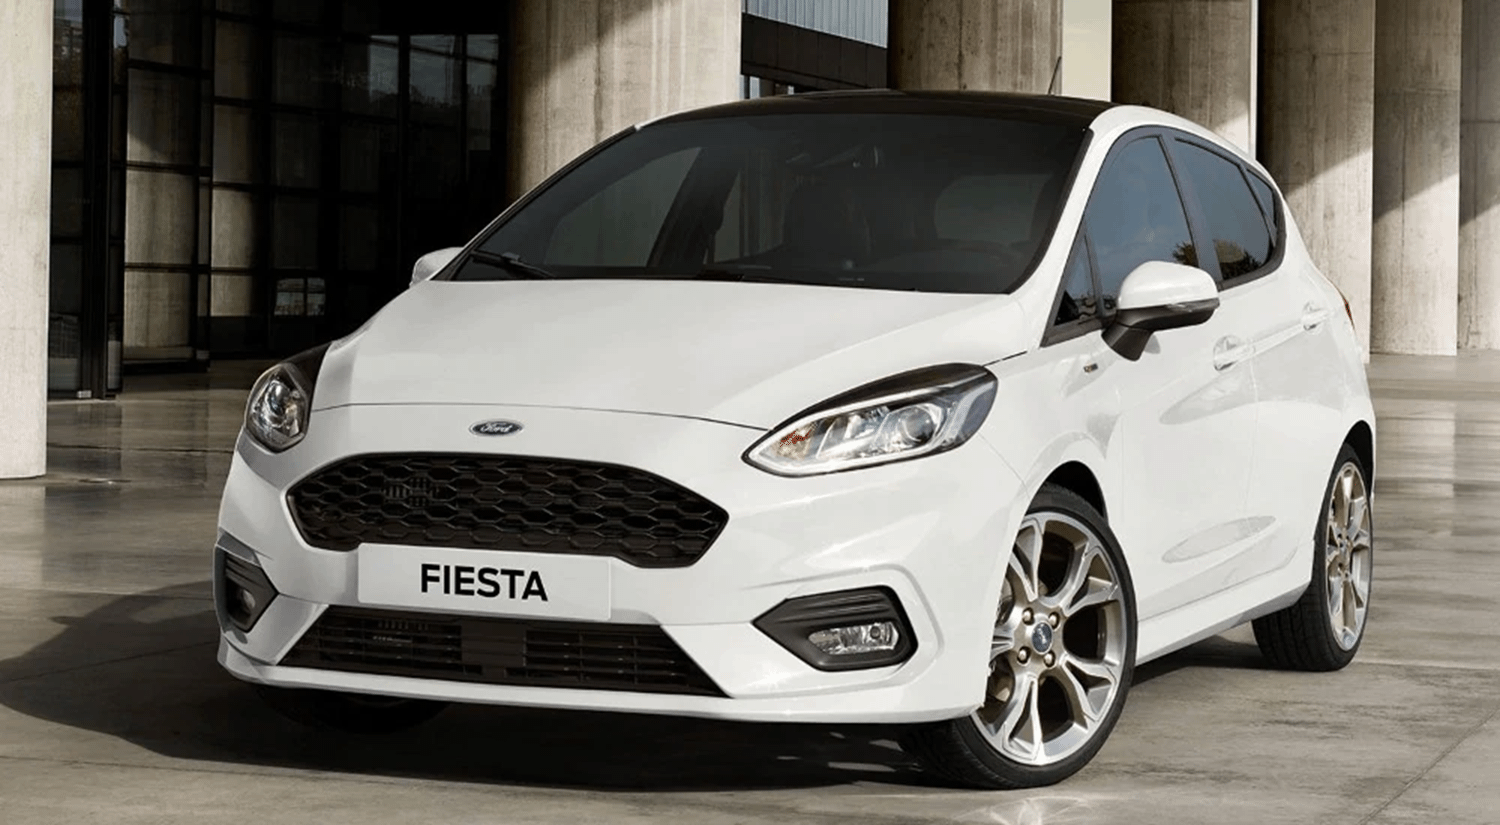 White Ford Fiesta parked on tiles